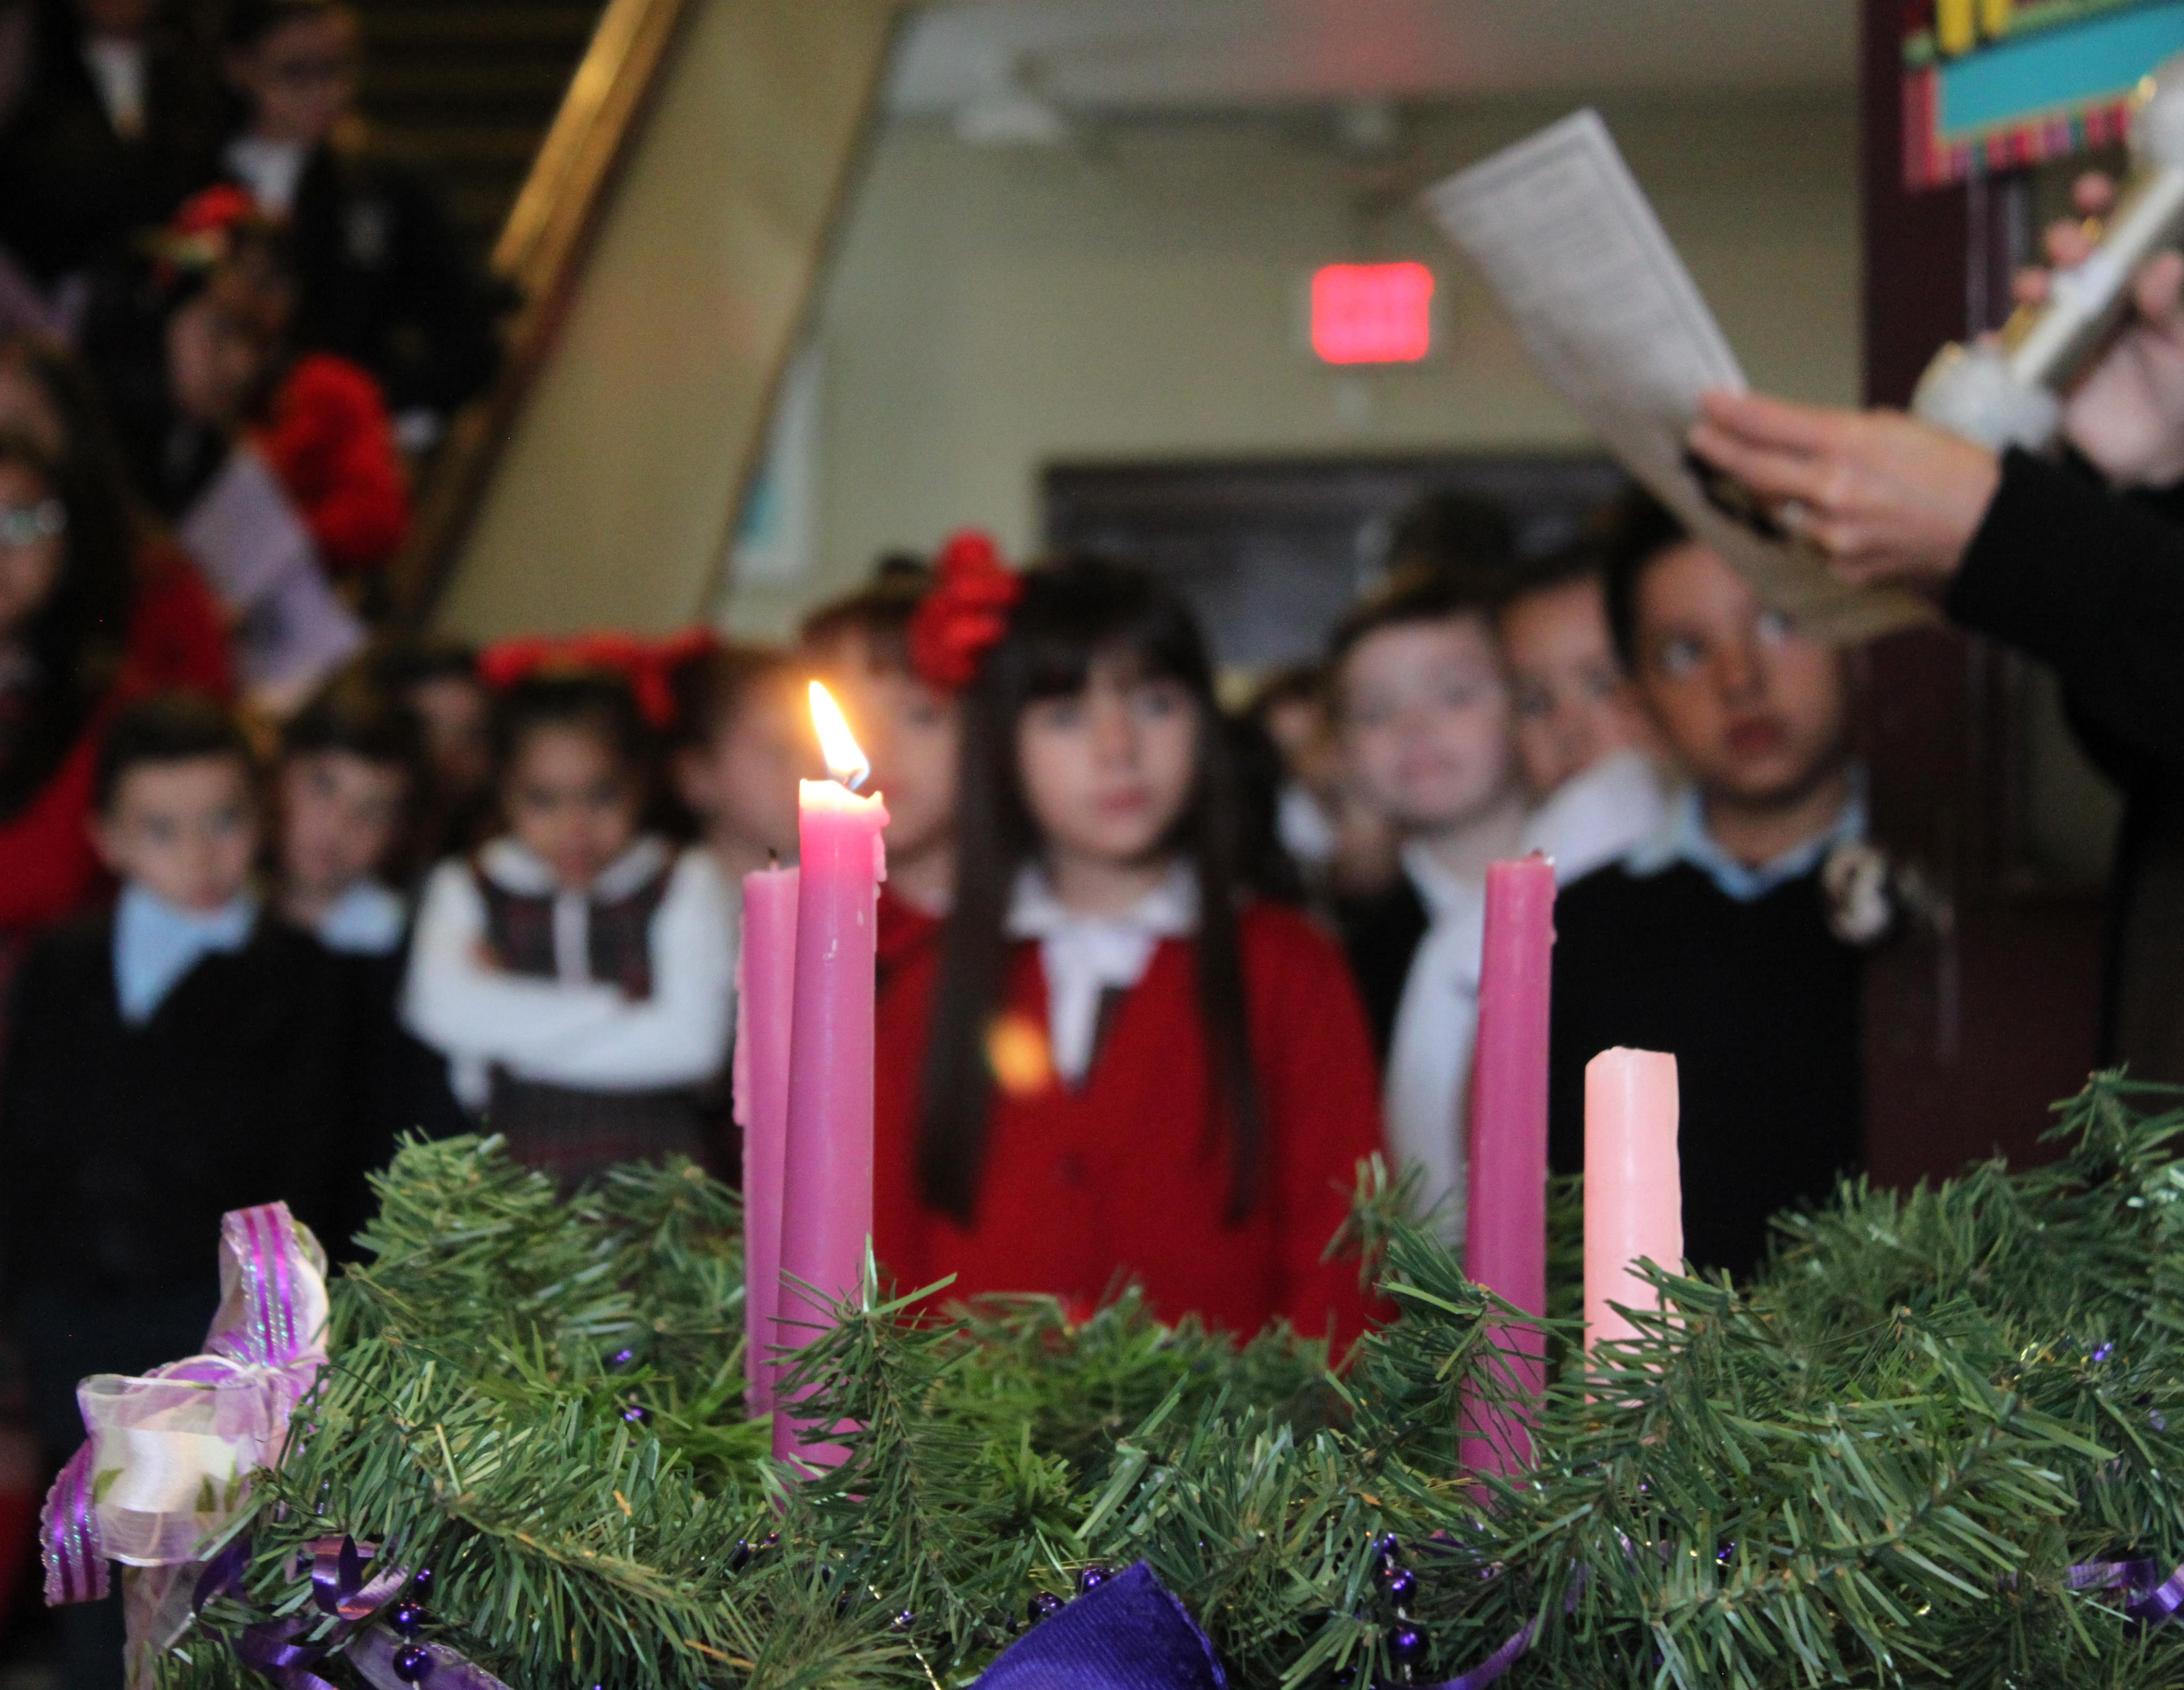 Lighting of the Advent candles